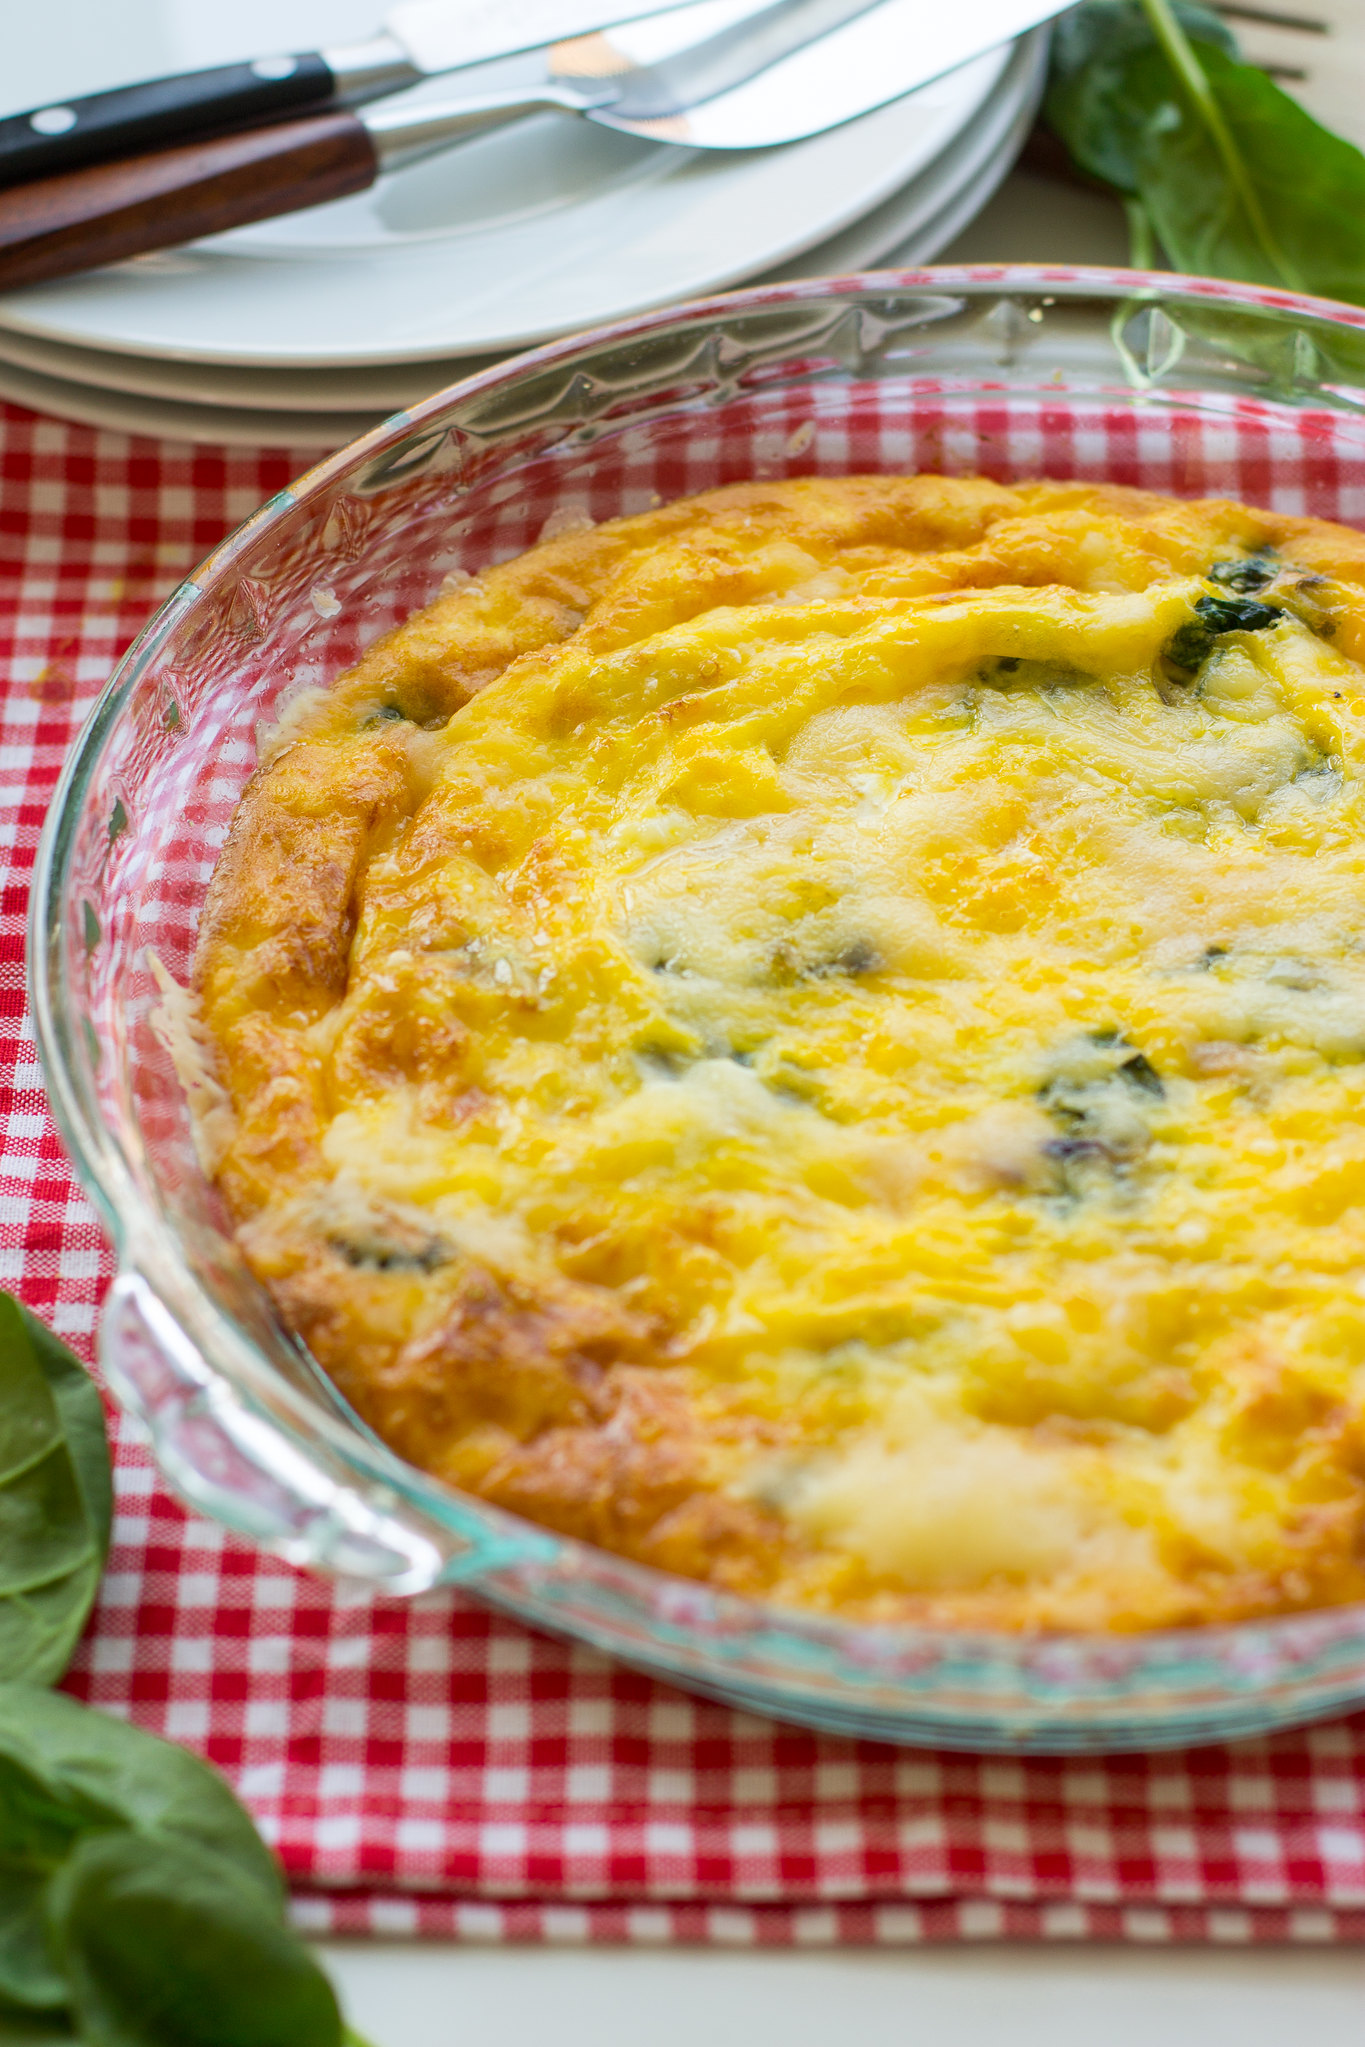 perfect oven-baked frittata with spinach, gouda, and parmesan